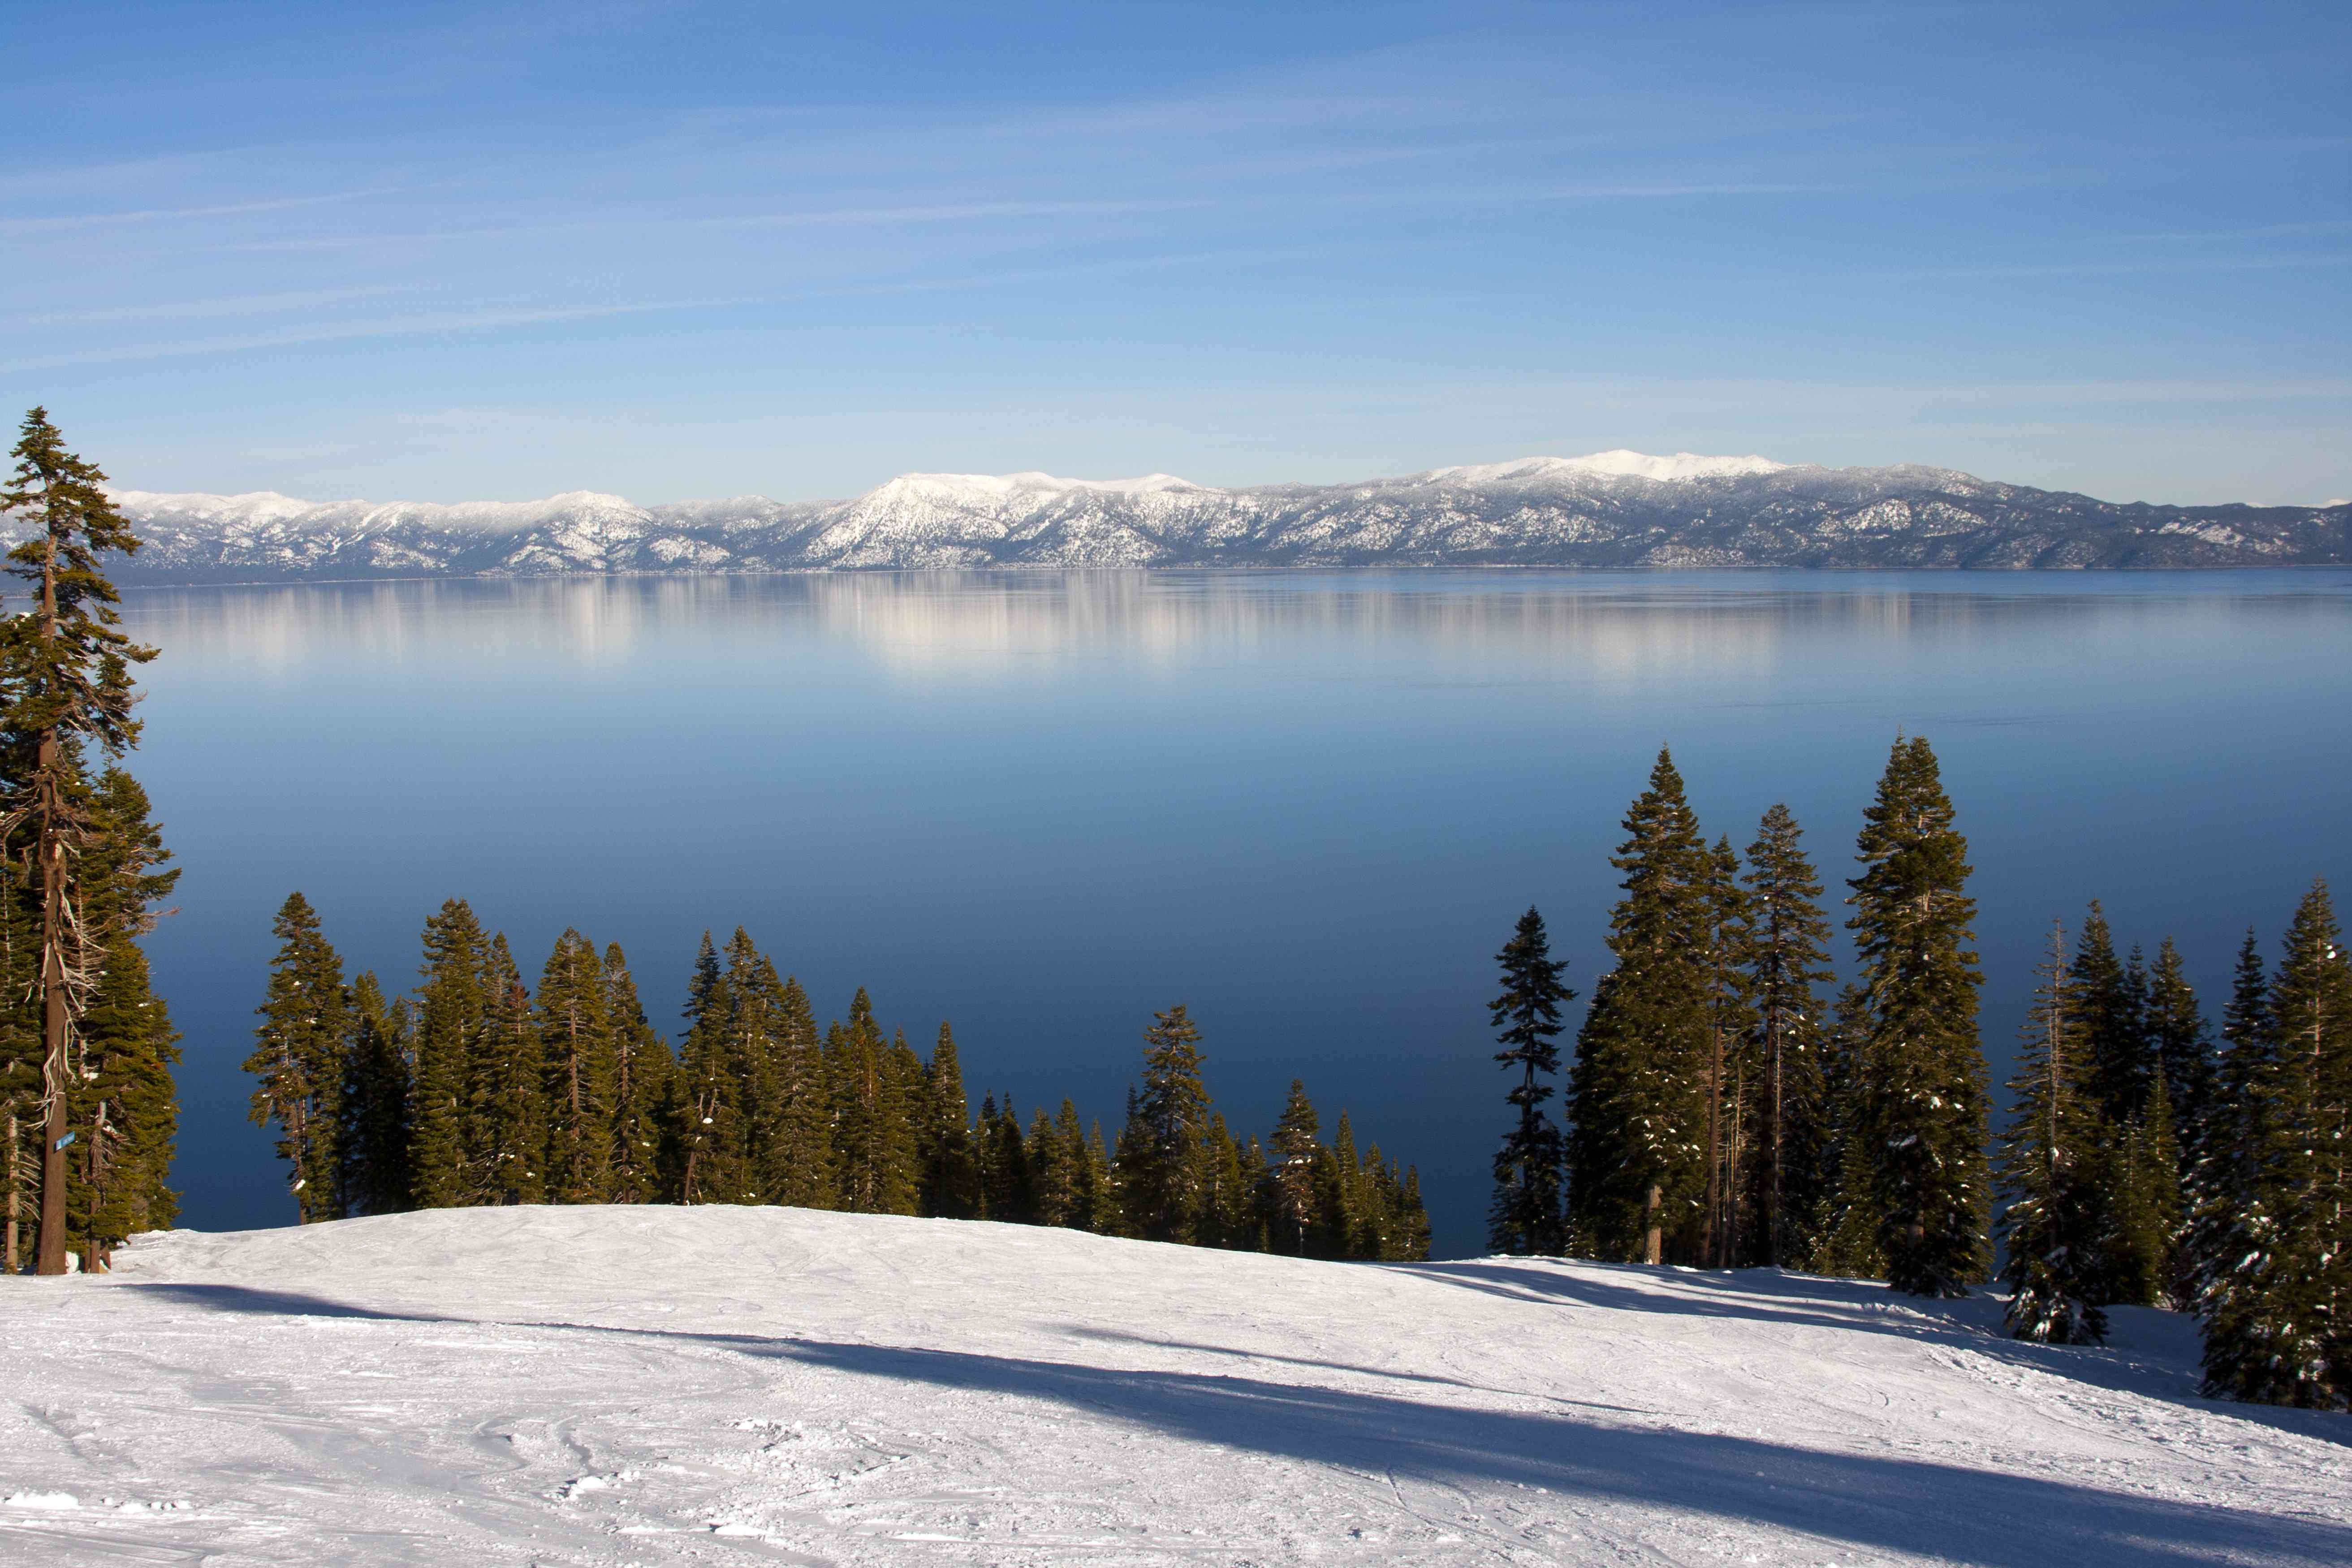 View of Lake Tahoe from the top of Homewood Mountain